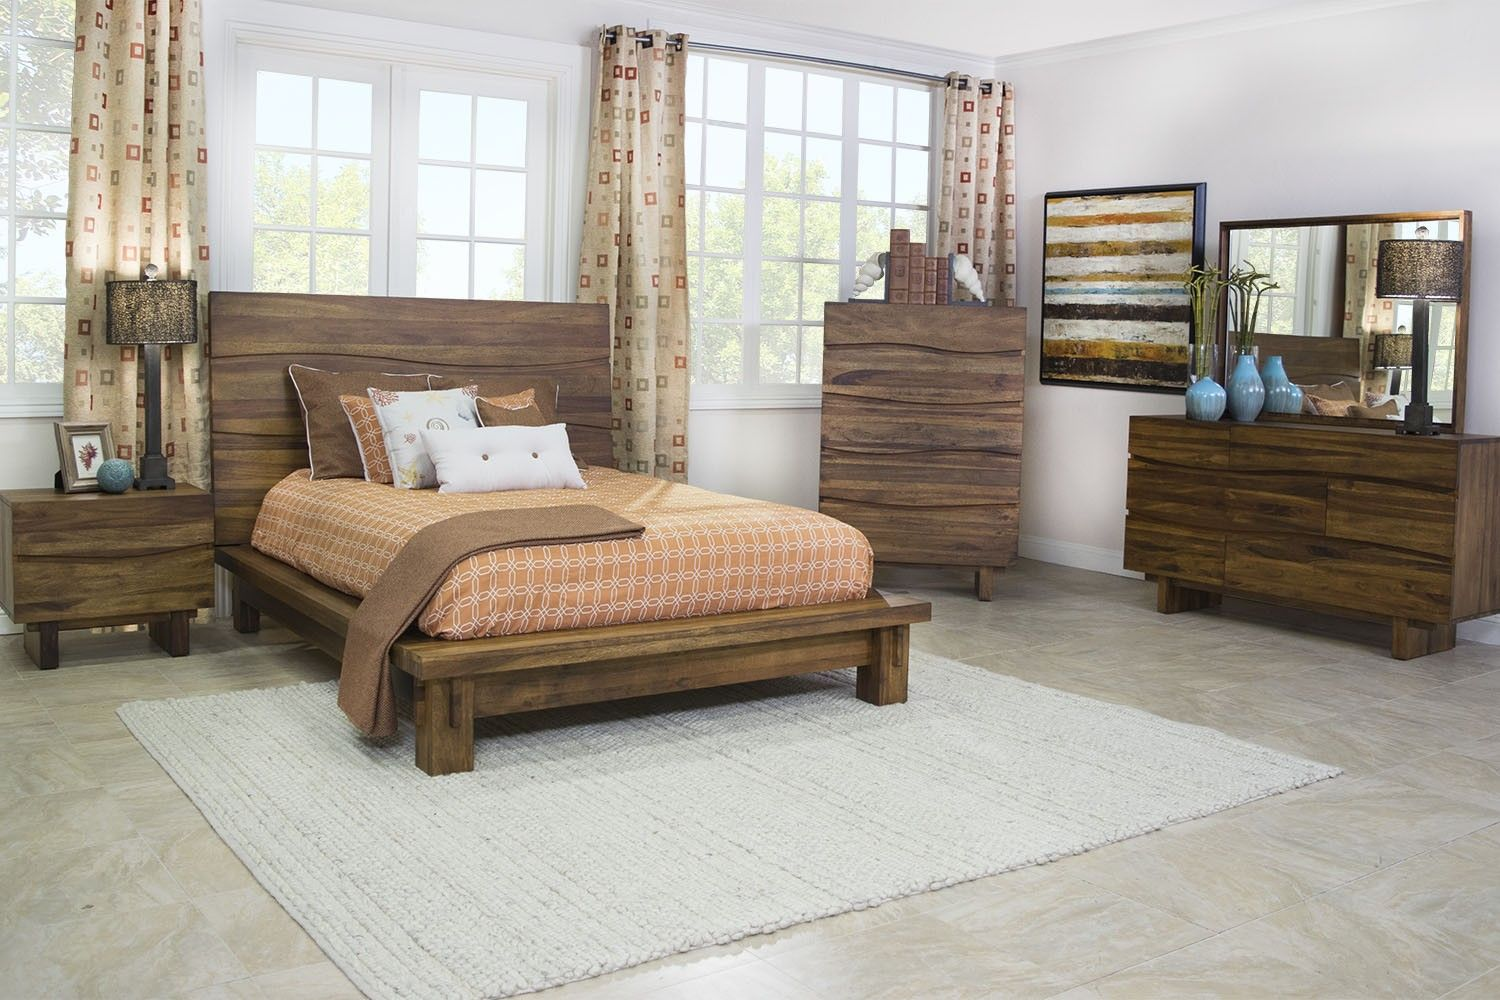 Mor Furniture For Less: The Ocean Bedroom | Mor Furniture For Less